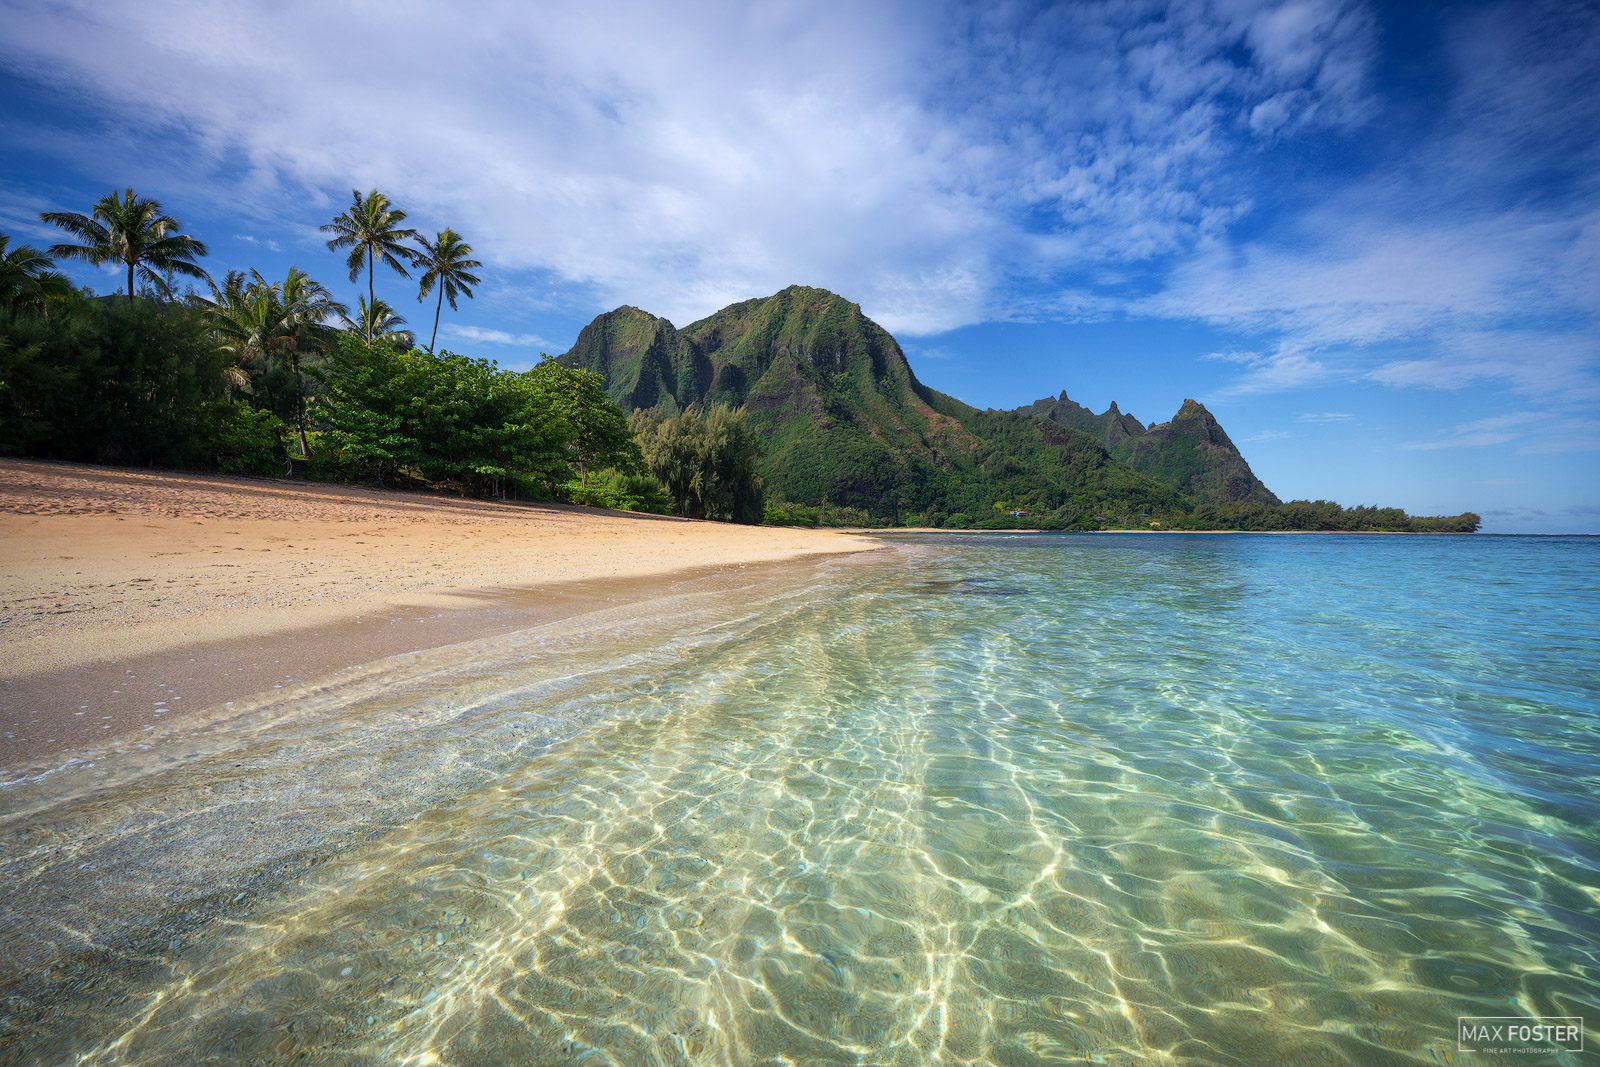 Bring your walls to life with Island In The Sun, Max Foster's limited edition photography print of Tunnels Beach, Kauai from...